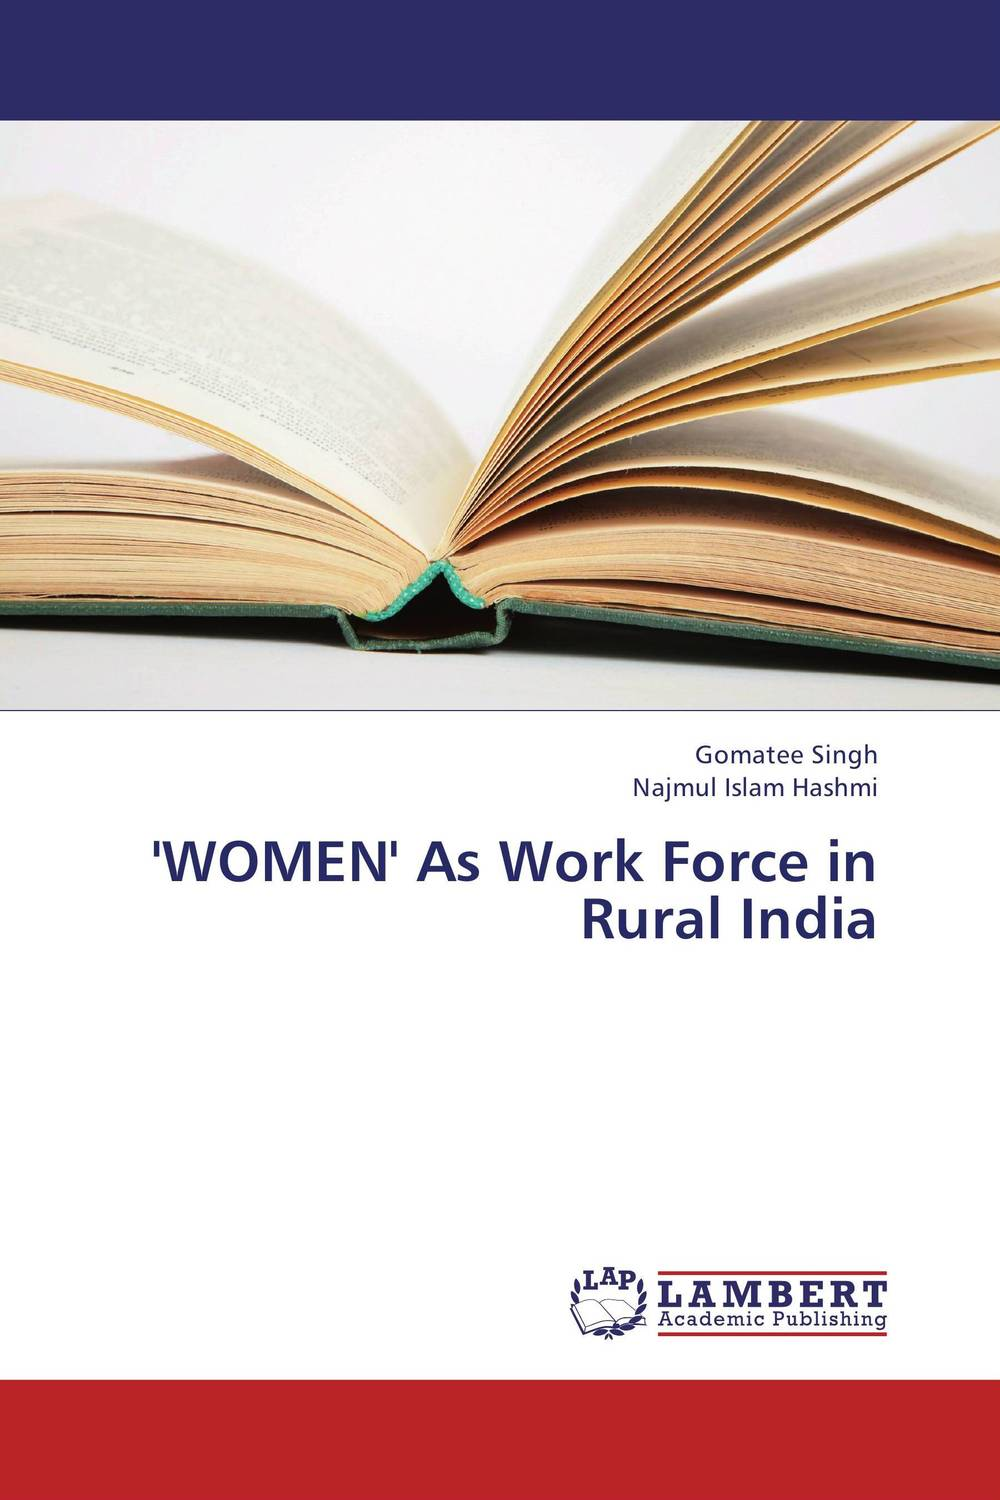 'WOMEN' As Work Force in Rural India women as work force in rural india